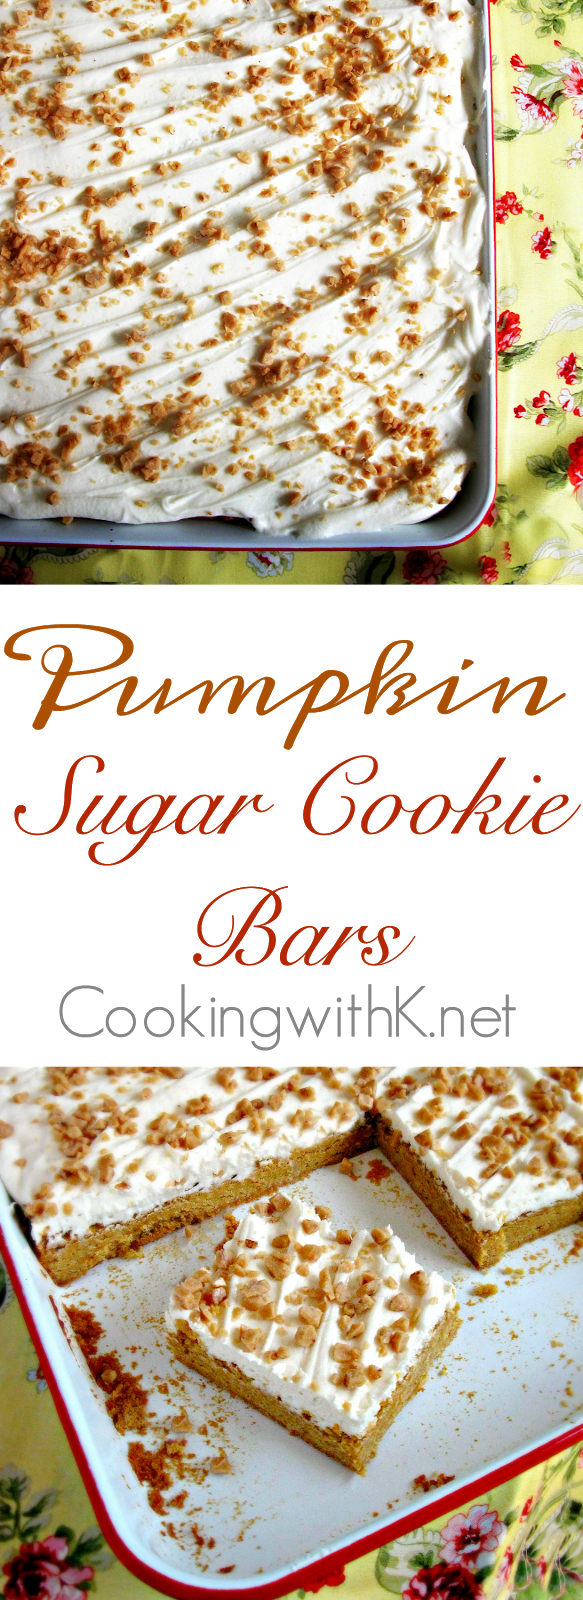 Pumpkin Sugar Cookie Bars with Buttercream Frosting and Toffee Bits